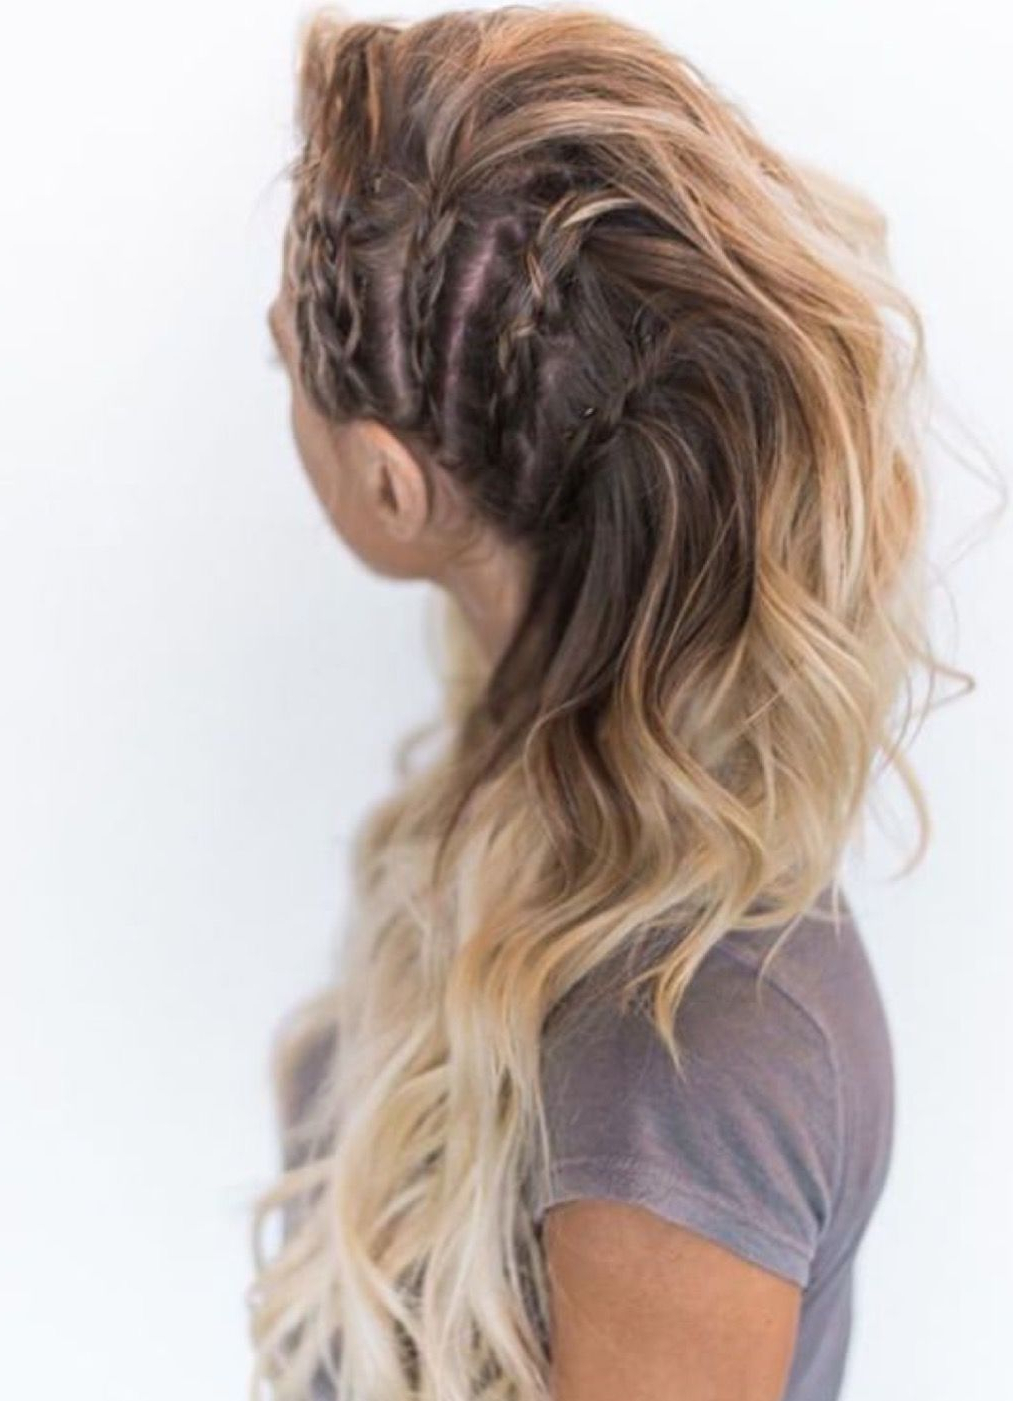 Avante Garde Inspired Side Braid Faux Mohawk With Curls All Falling In Recent Messy Braided Faux Hawk Hairstyles (Gallery 11 of 20)